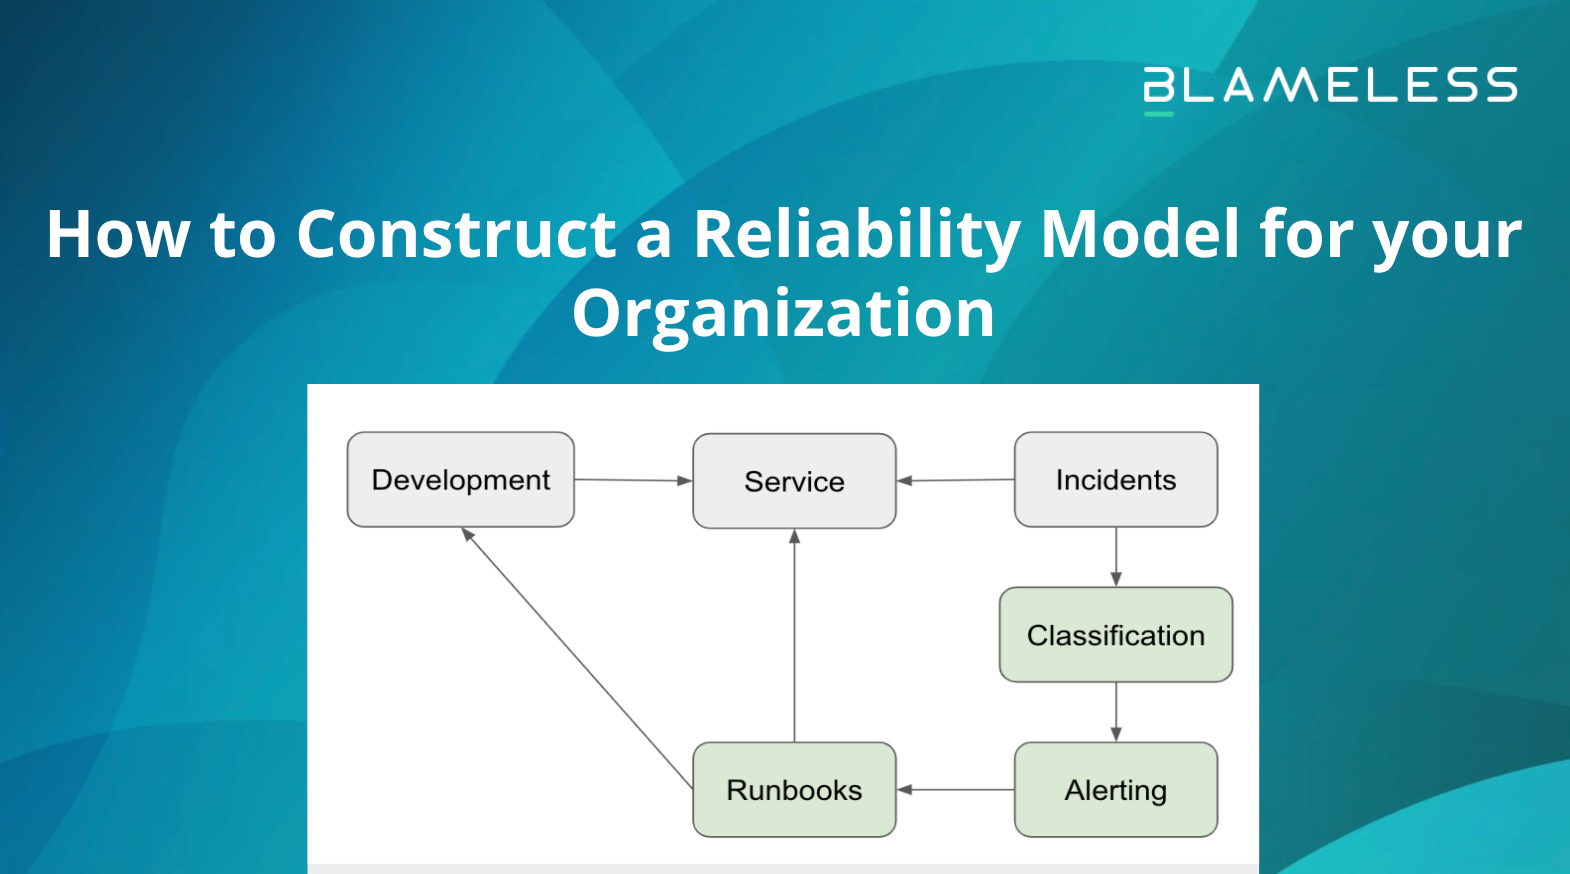 How to Construct a Reliability Model for your Organization